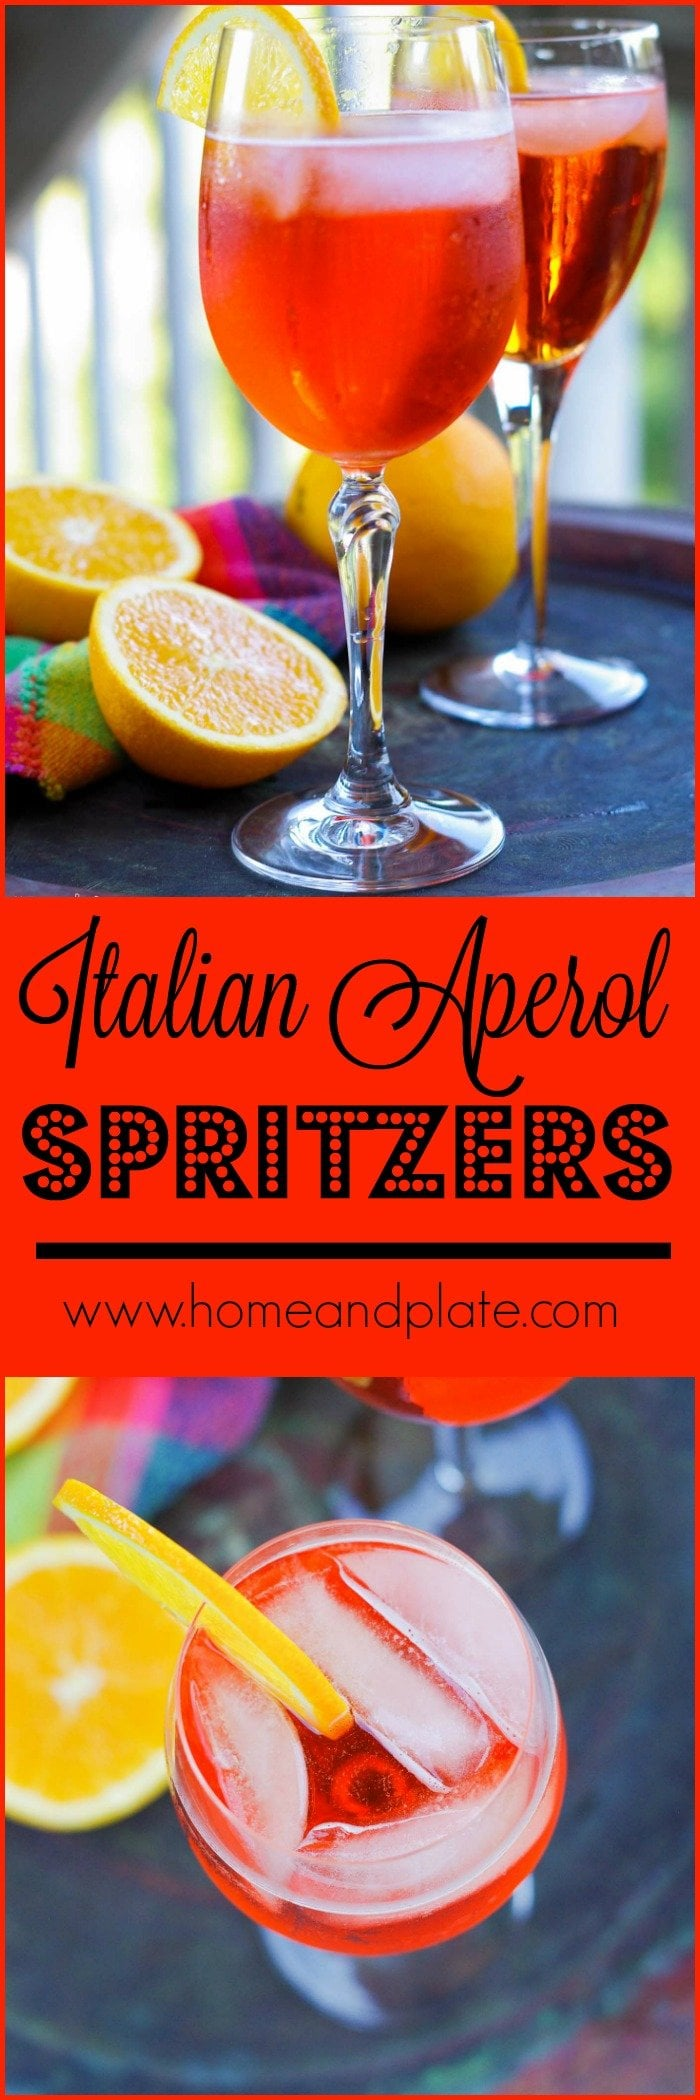 Italian Aperol Spritzers | Imagine a bubbly concoction of sparkling Prosecco white wine paired with soda water with the underlying flavor of oranges, herbs and spices.